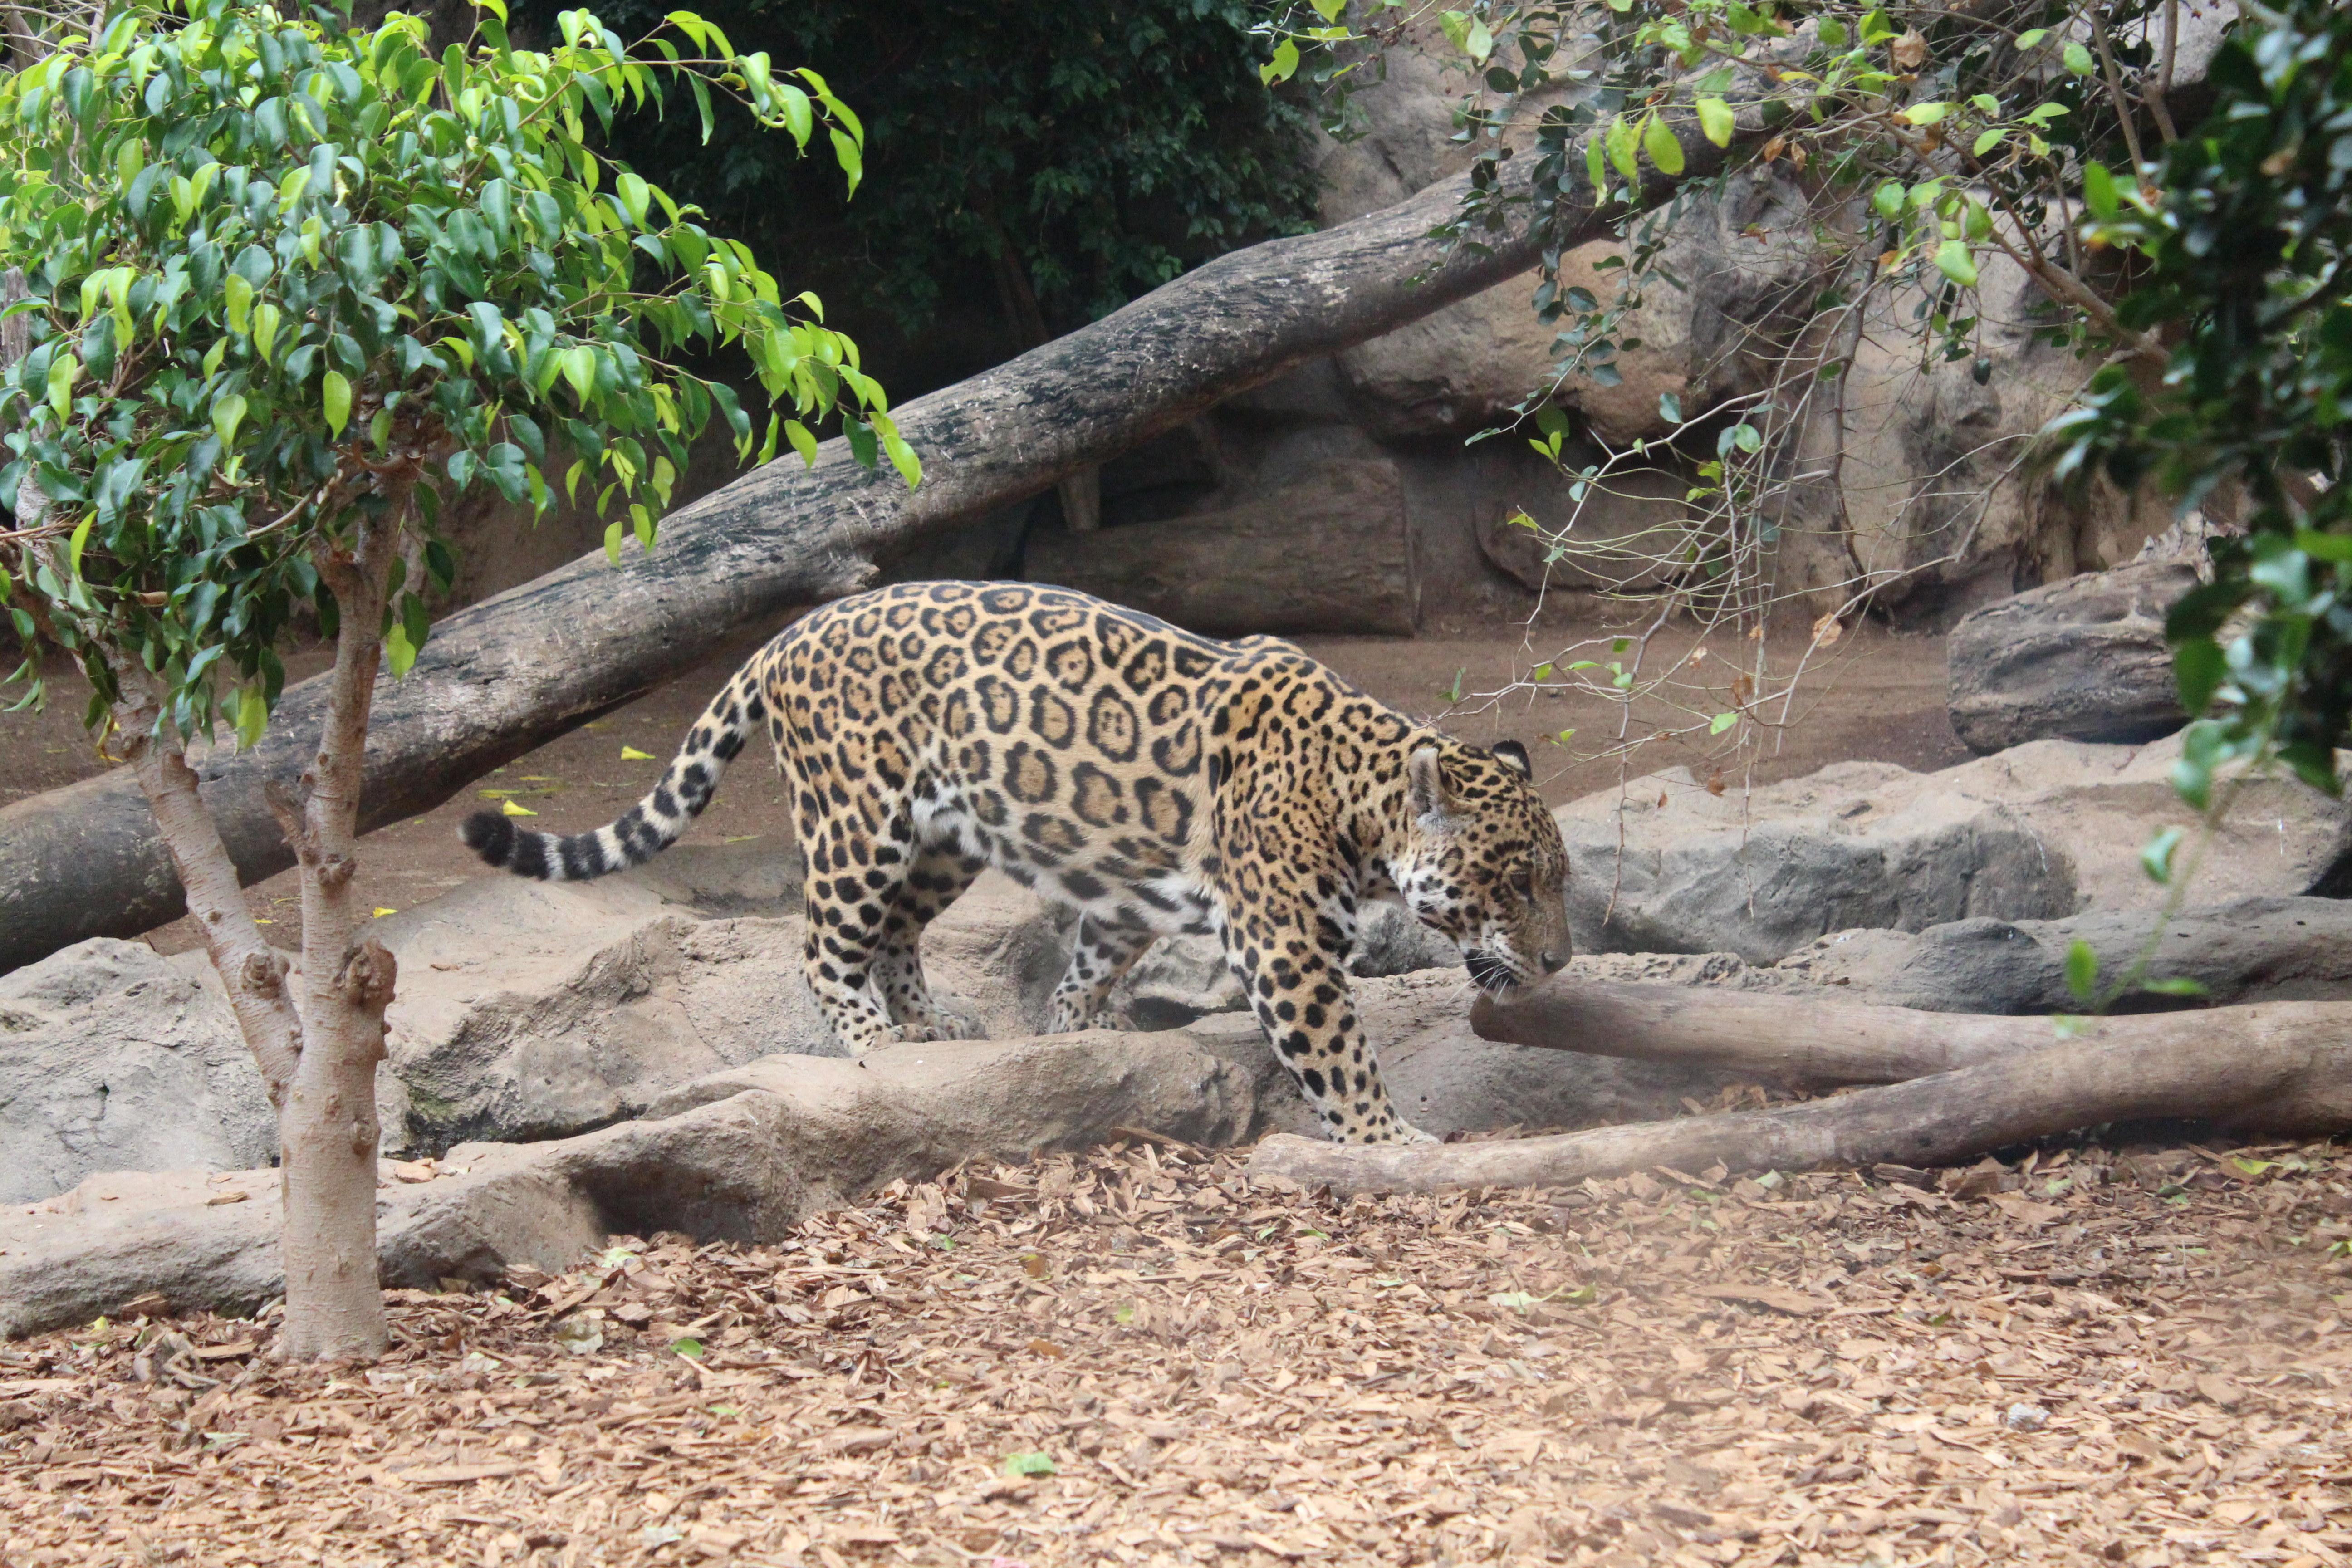 A Jaguar taking a walk amongst the rocks and foliage at Loro Parque.